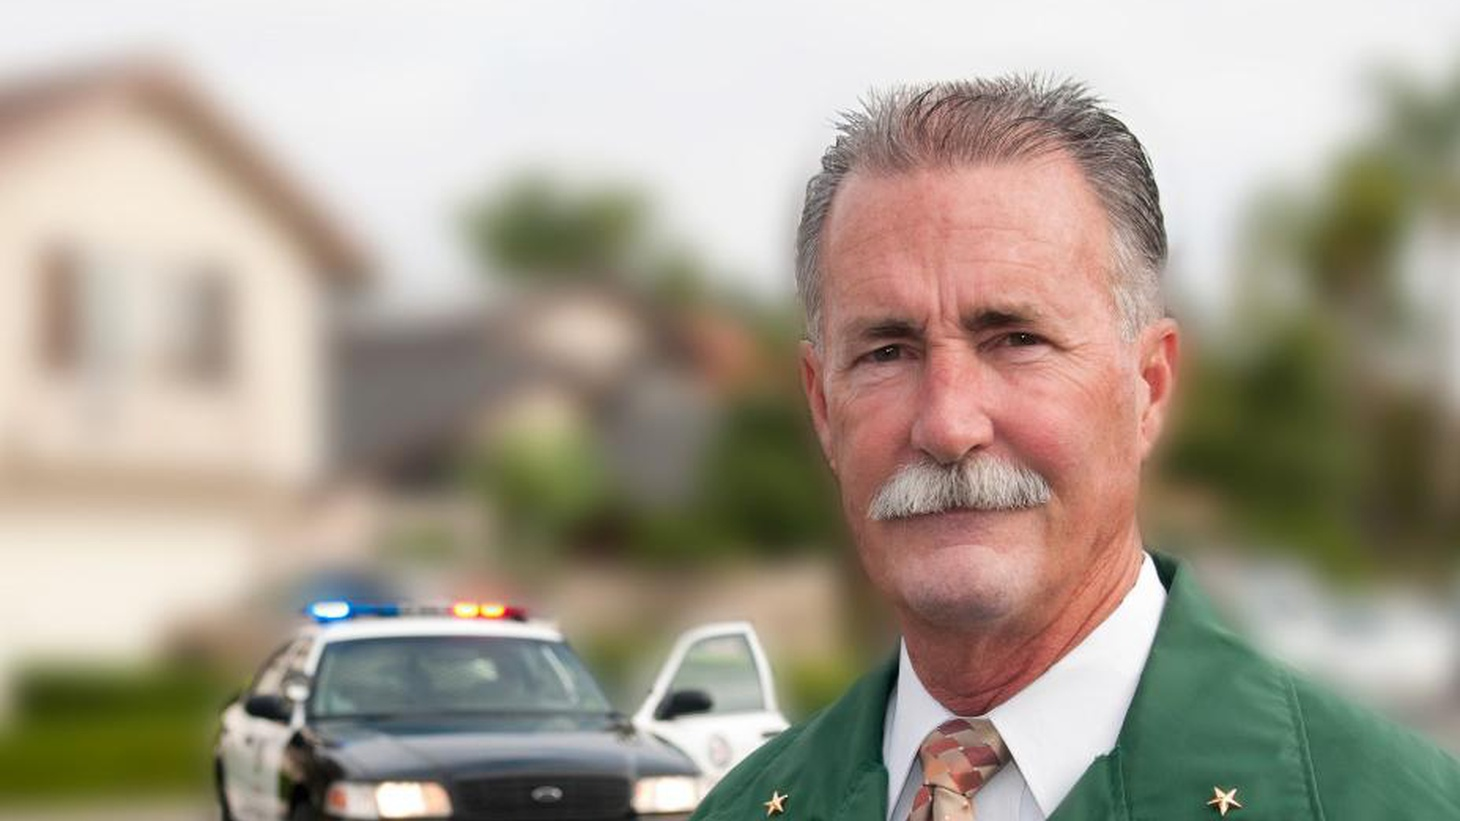 For 80 years, no LA Sheriff has been replaced by an election, but Lee Baca is tarnished by scandal as is his best-known opponent. We hear about dark horse Bob Olmsted.